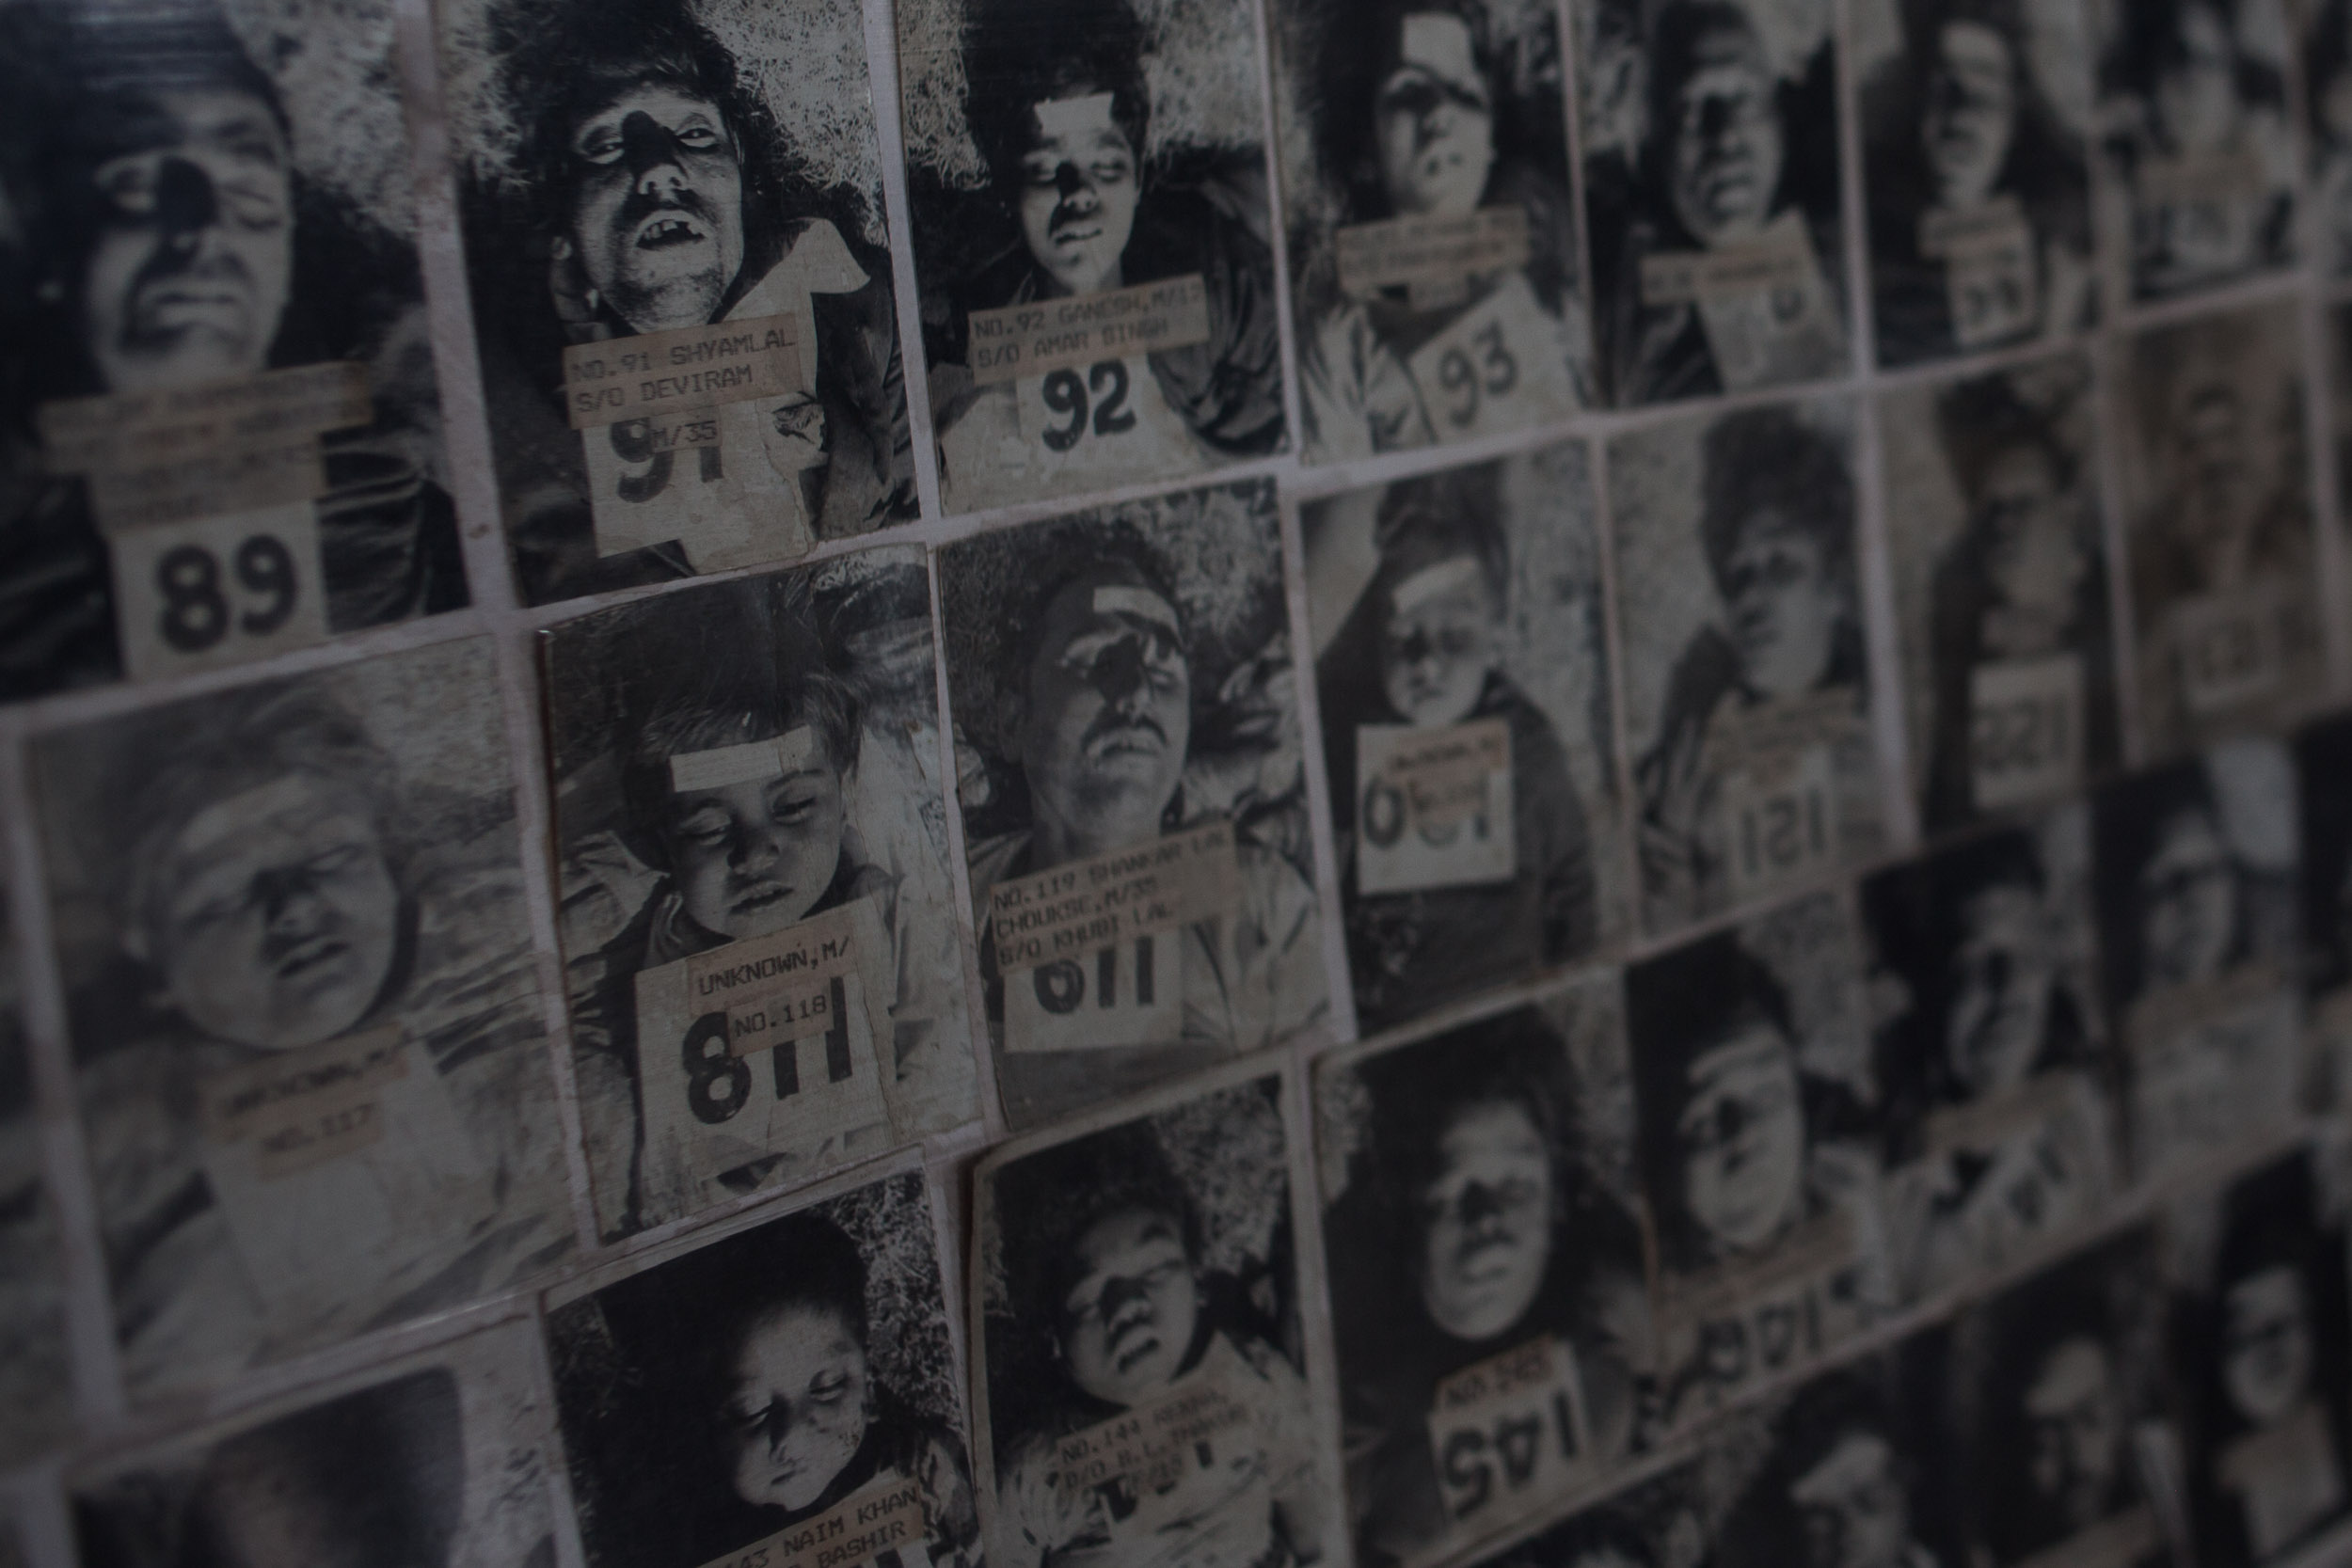 After the tragedy, photographer Subash Godane frome the Legal Medicine Institute of Bhopal took photographs of the deceased so their families could identify them.